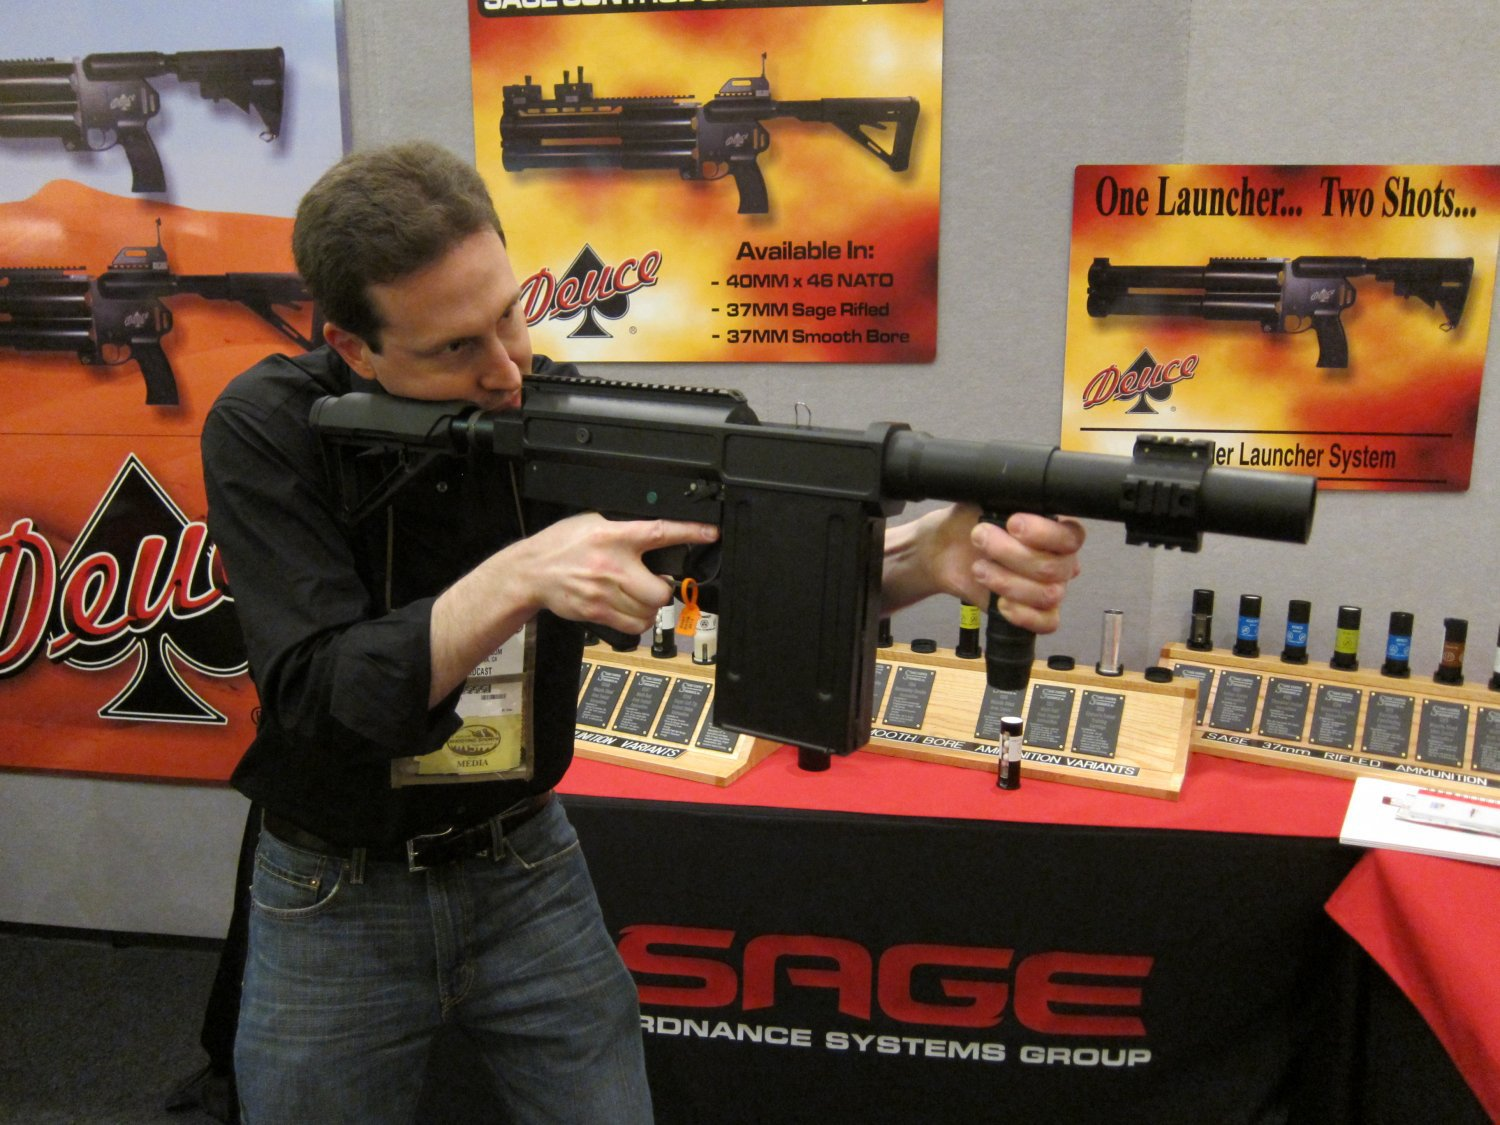 <!--:en-->Sage Ordnance Systems Deuce Over/Under Dual 40mm (40x46mm NATO)/37mm Sage Rifled/37mm Smooth-Bore Grenade Launcher and Prototype Mag-Fed Semi-Auto 37mm Grenade Launcher <!--:-->